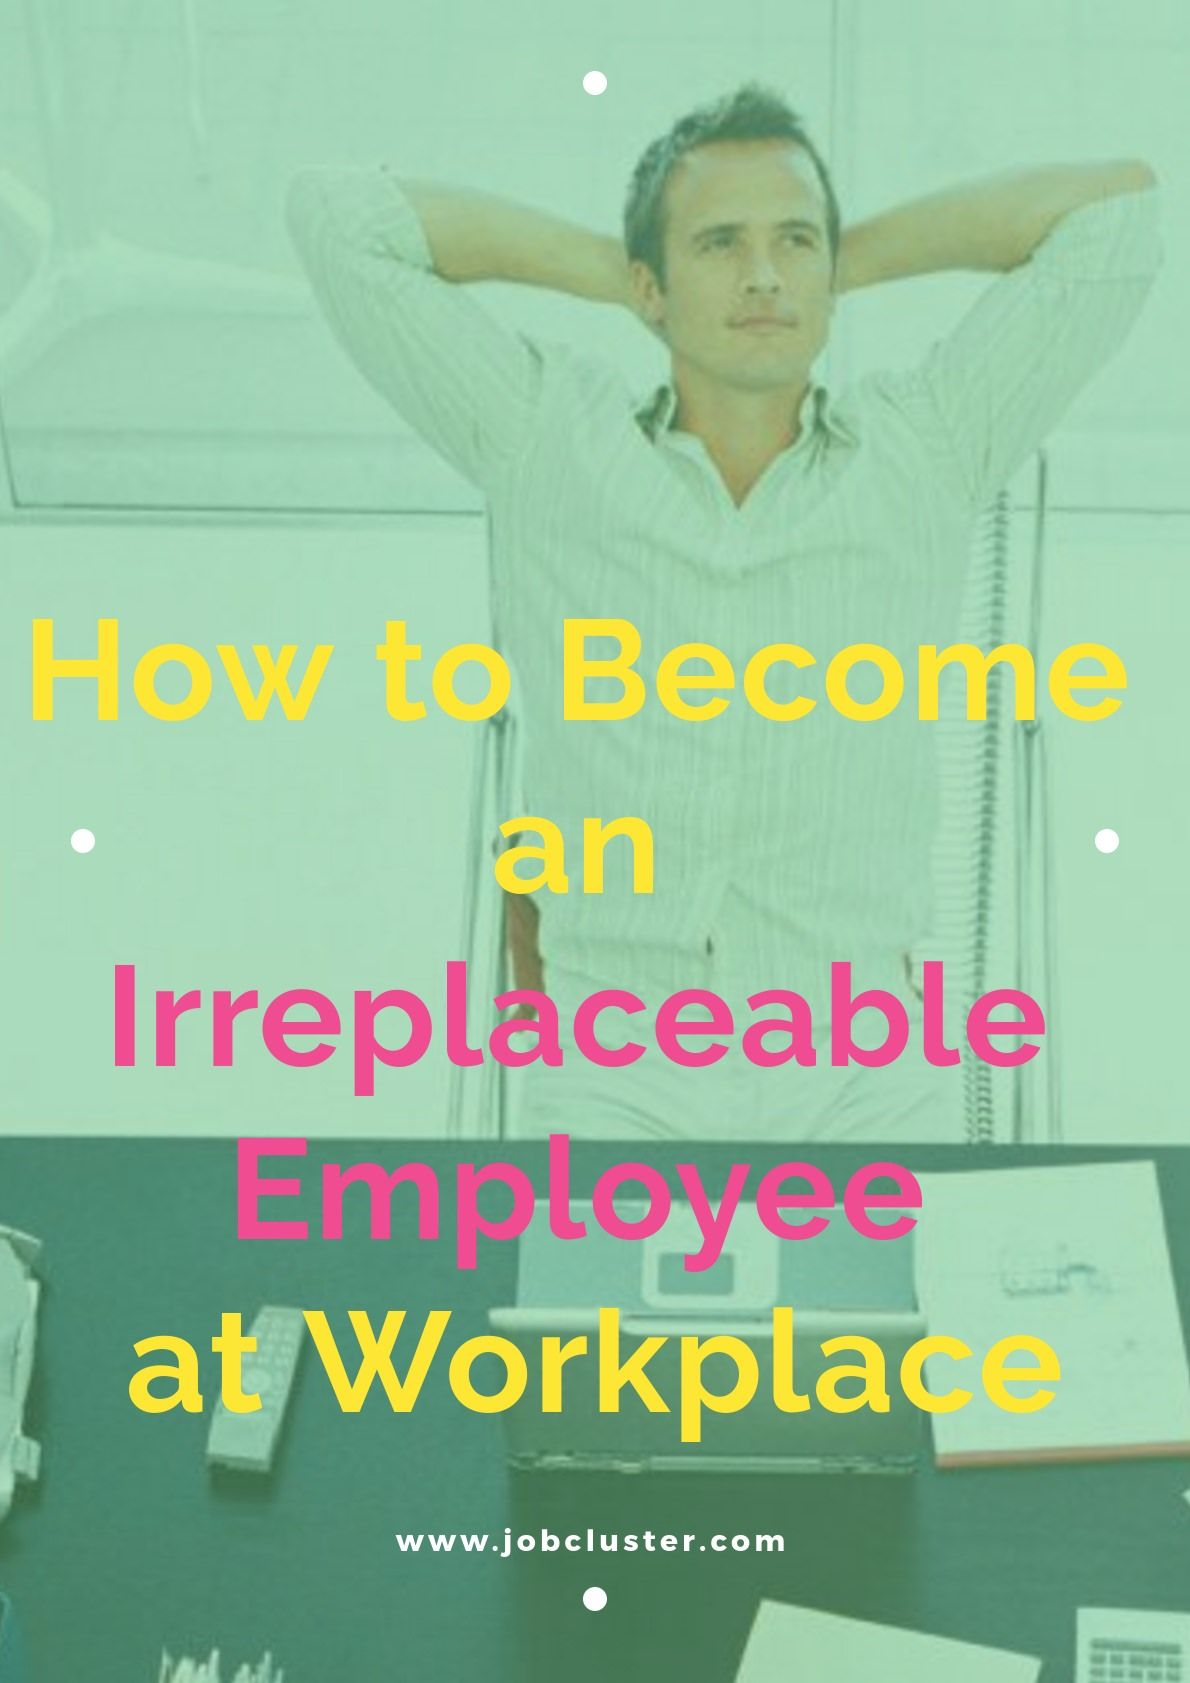 How to an Irreplaceable Employee at Workplace